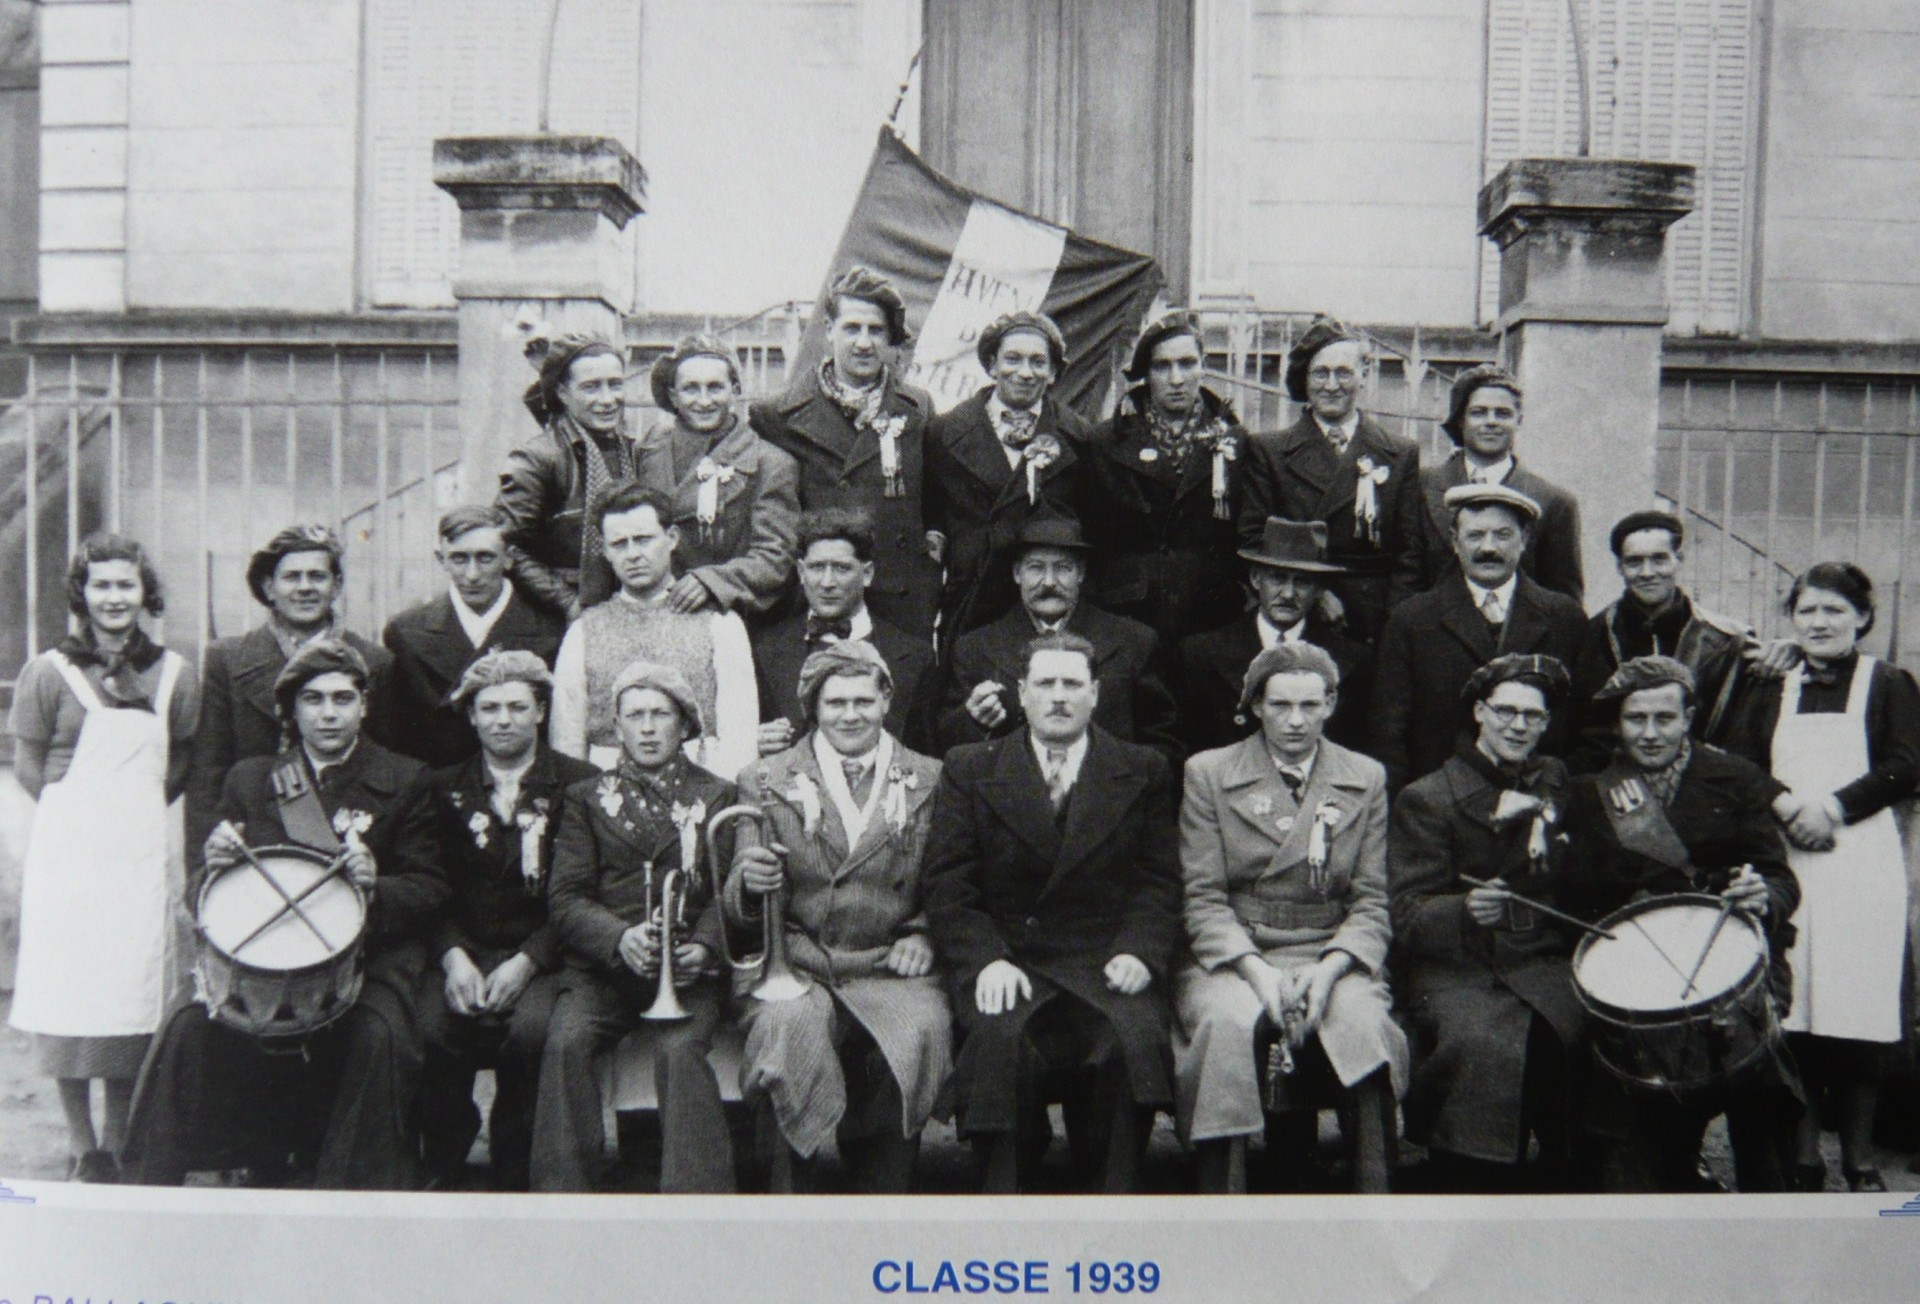 Classe 1939 Charly